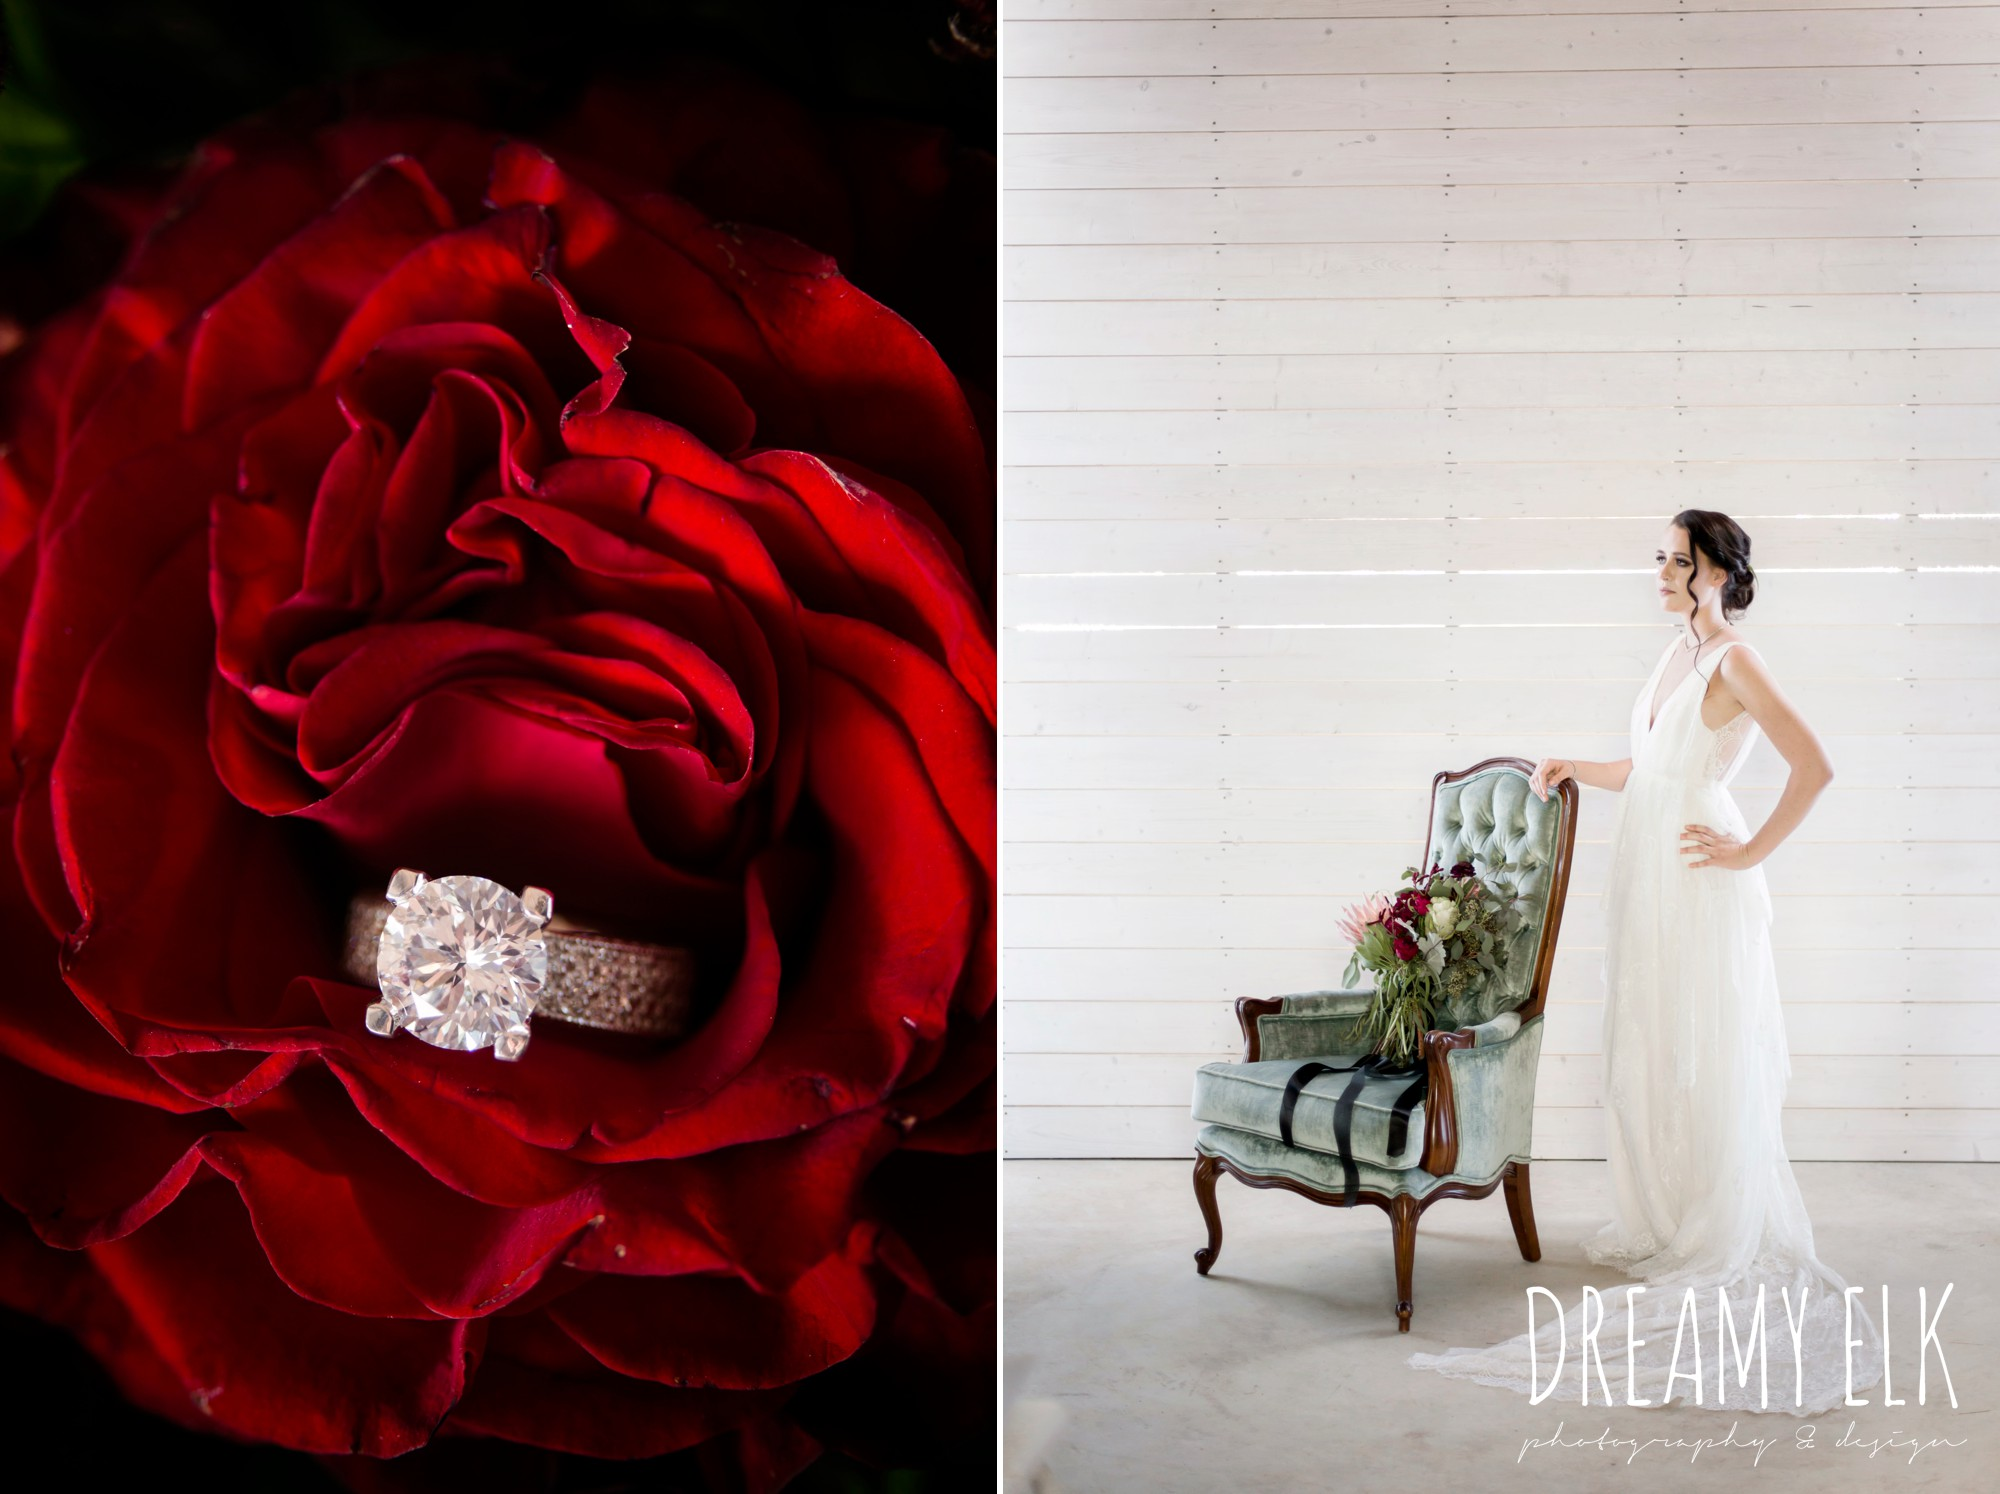 the cedars ranch, libby cole creations, saint isabel bridal, melange bridal, kirk root designs, moody rich delicate marfa inspired burgundy maroon black white spring styled wedding photo shoot {dreamy elk photography and design}